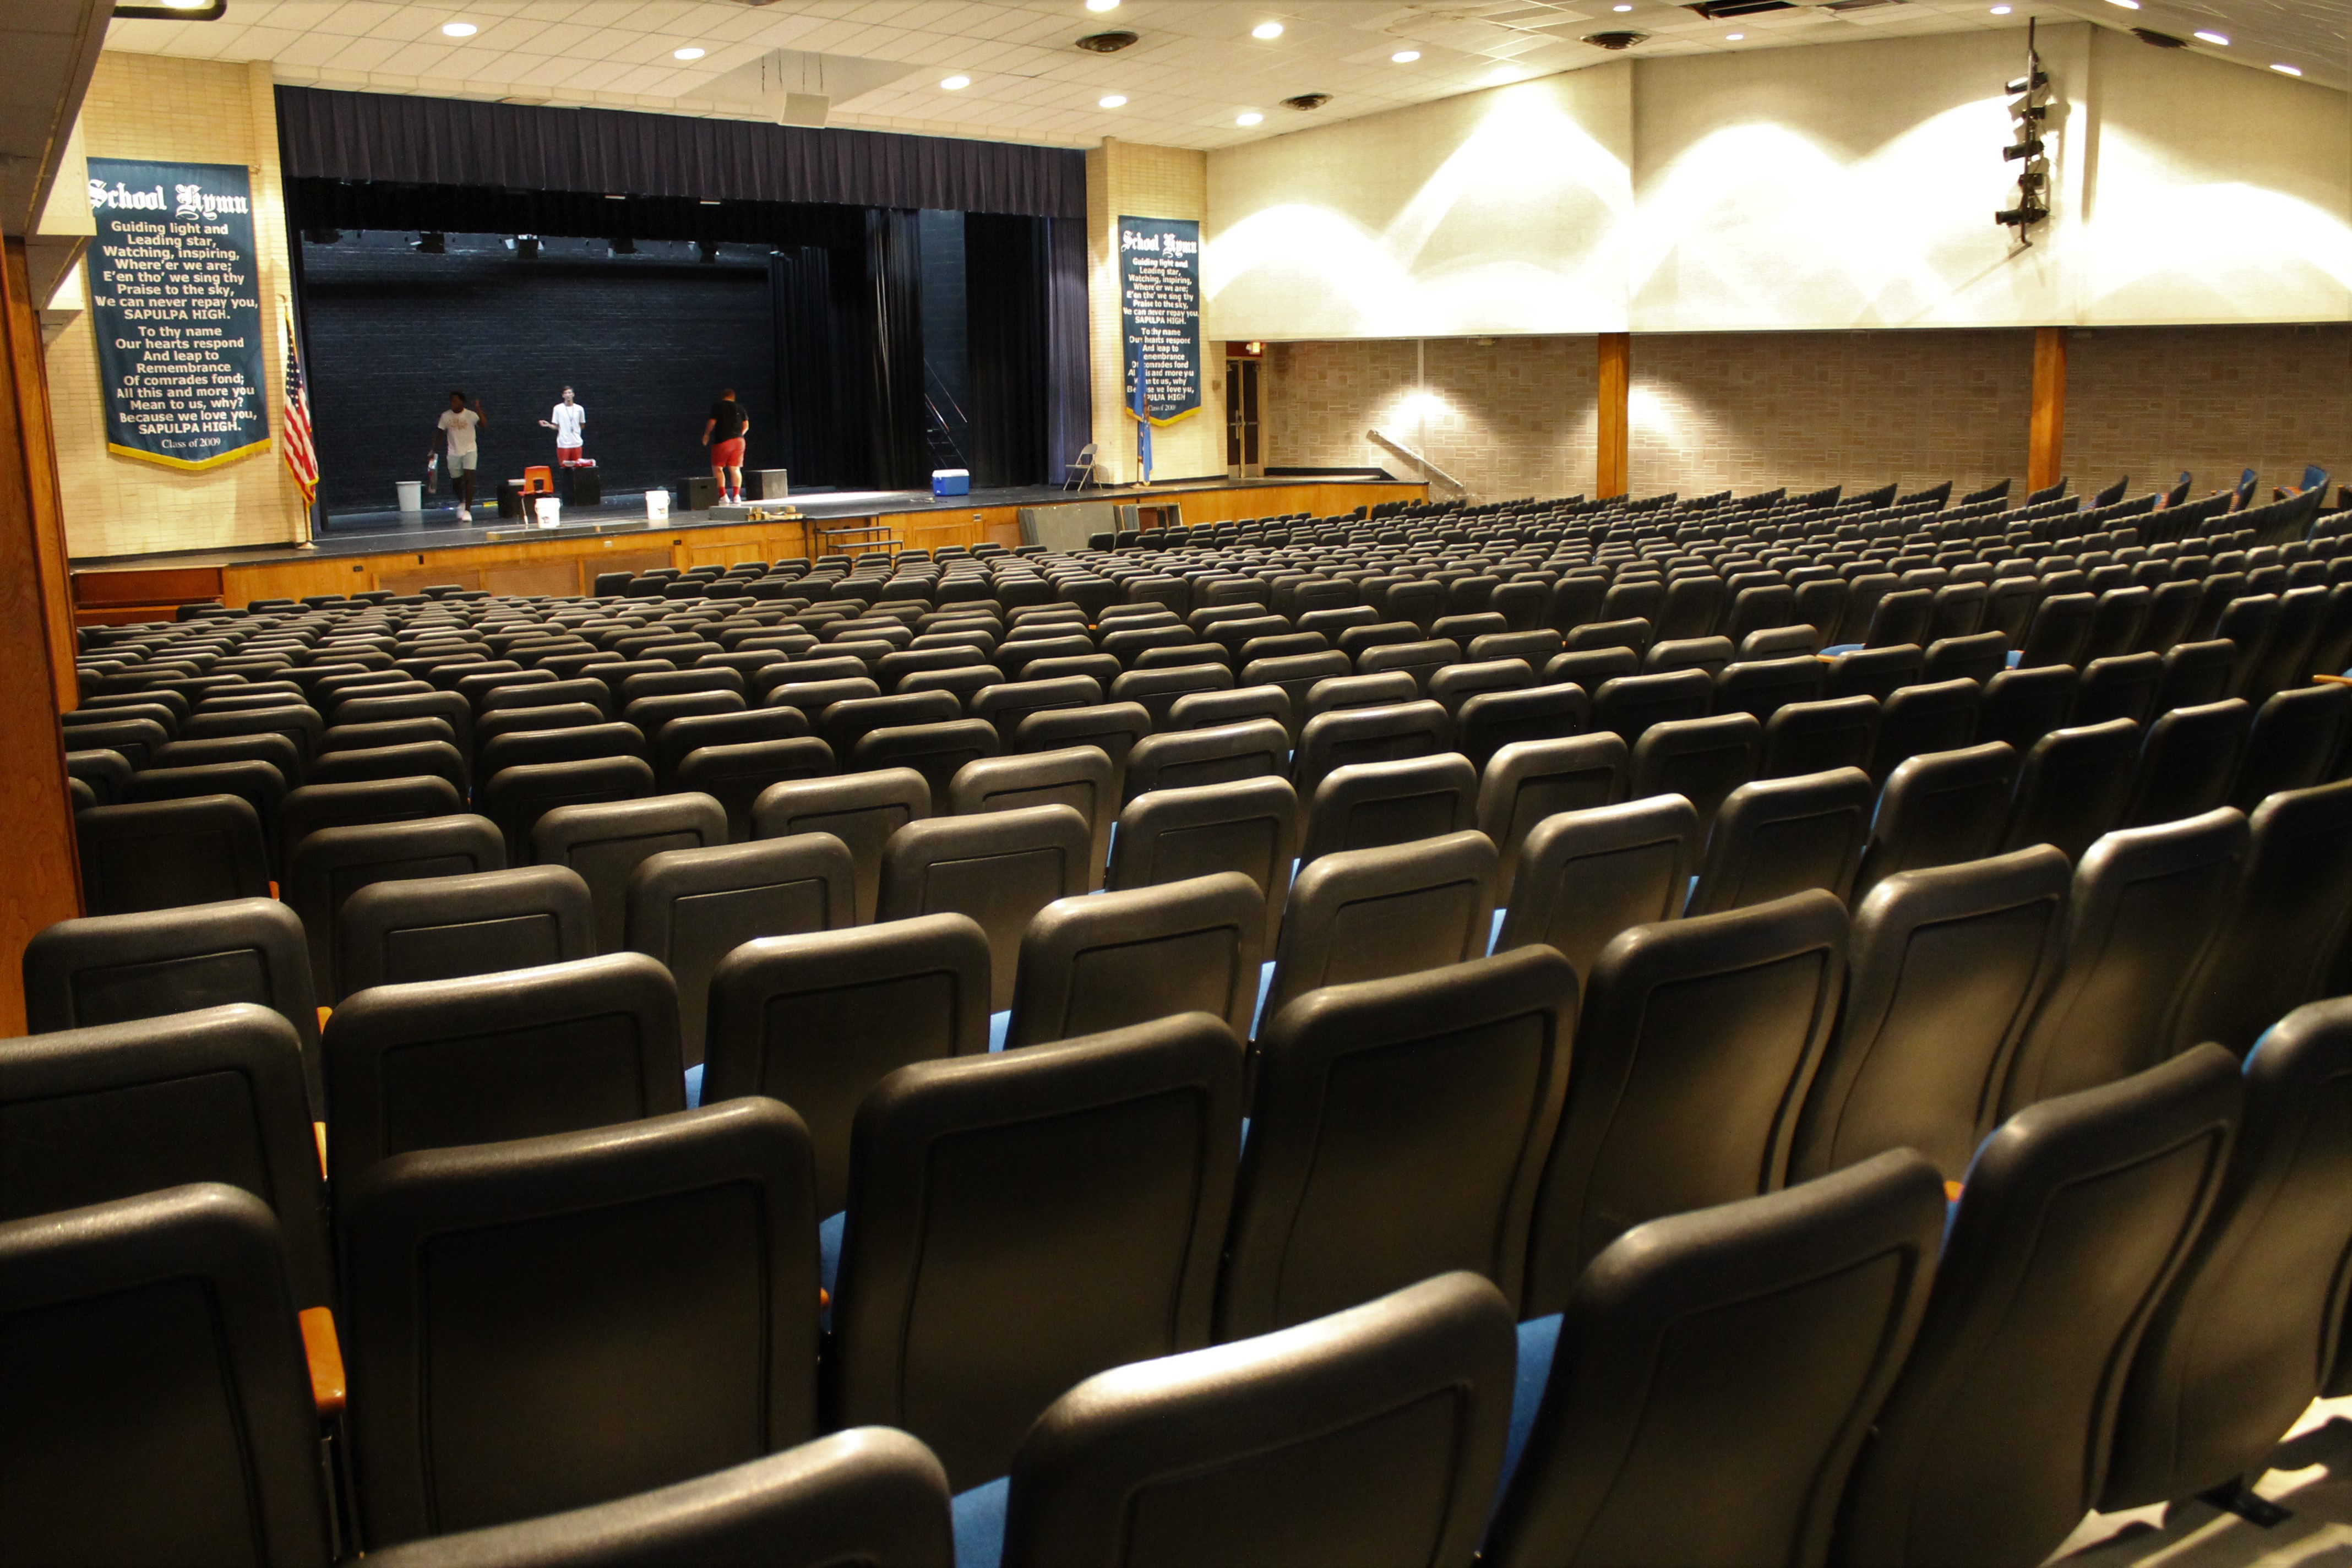 Auditorium